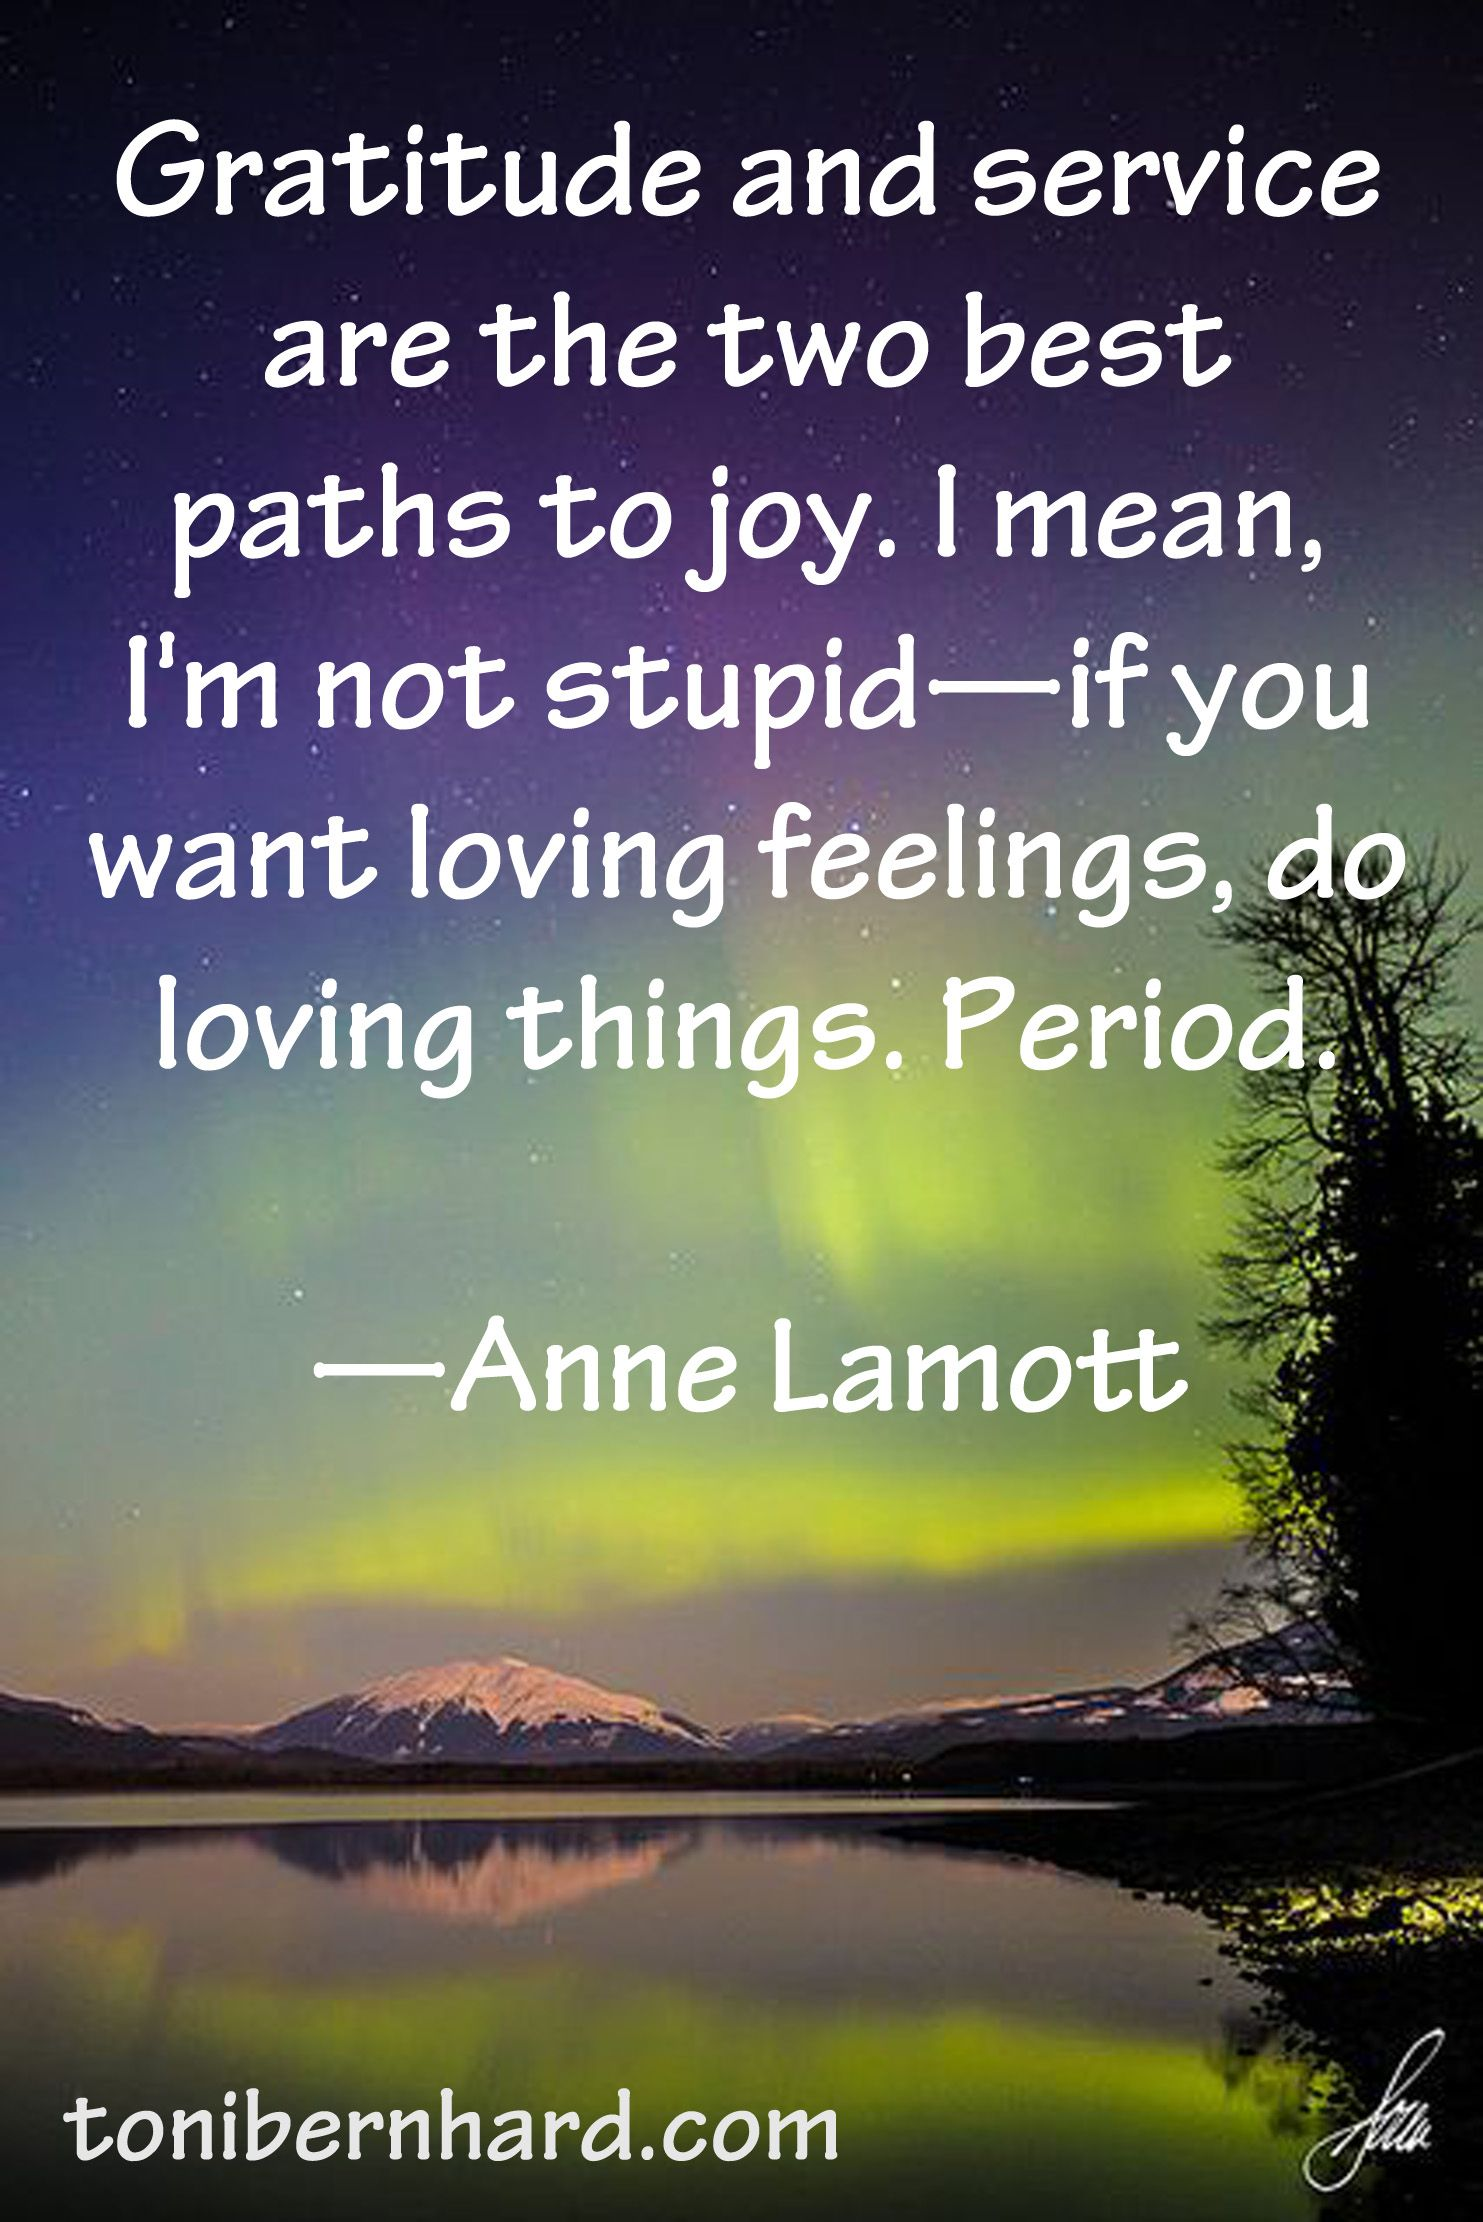 Pin By Yippeemovement Org On How To Be Happy Anne Lamott Quotes Anne Lamott Cool Words